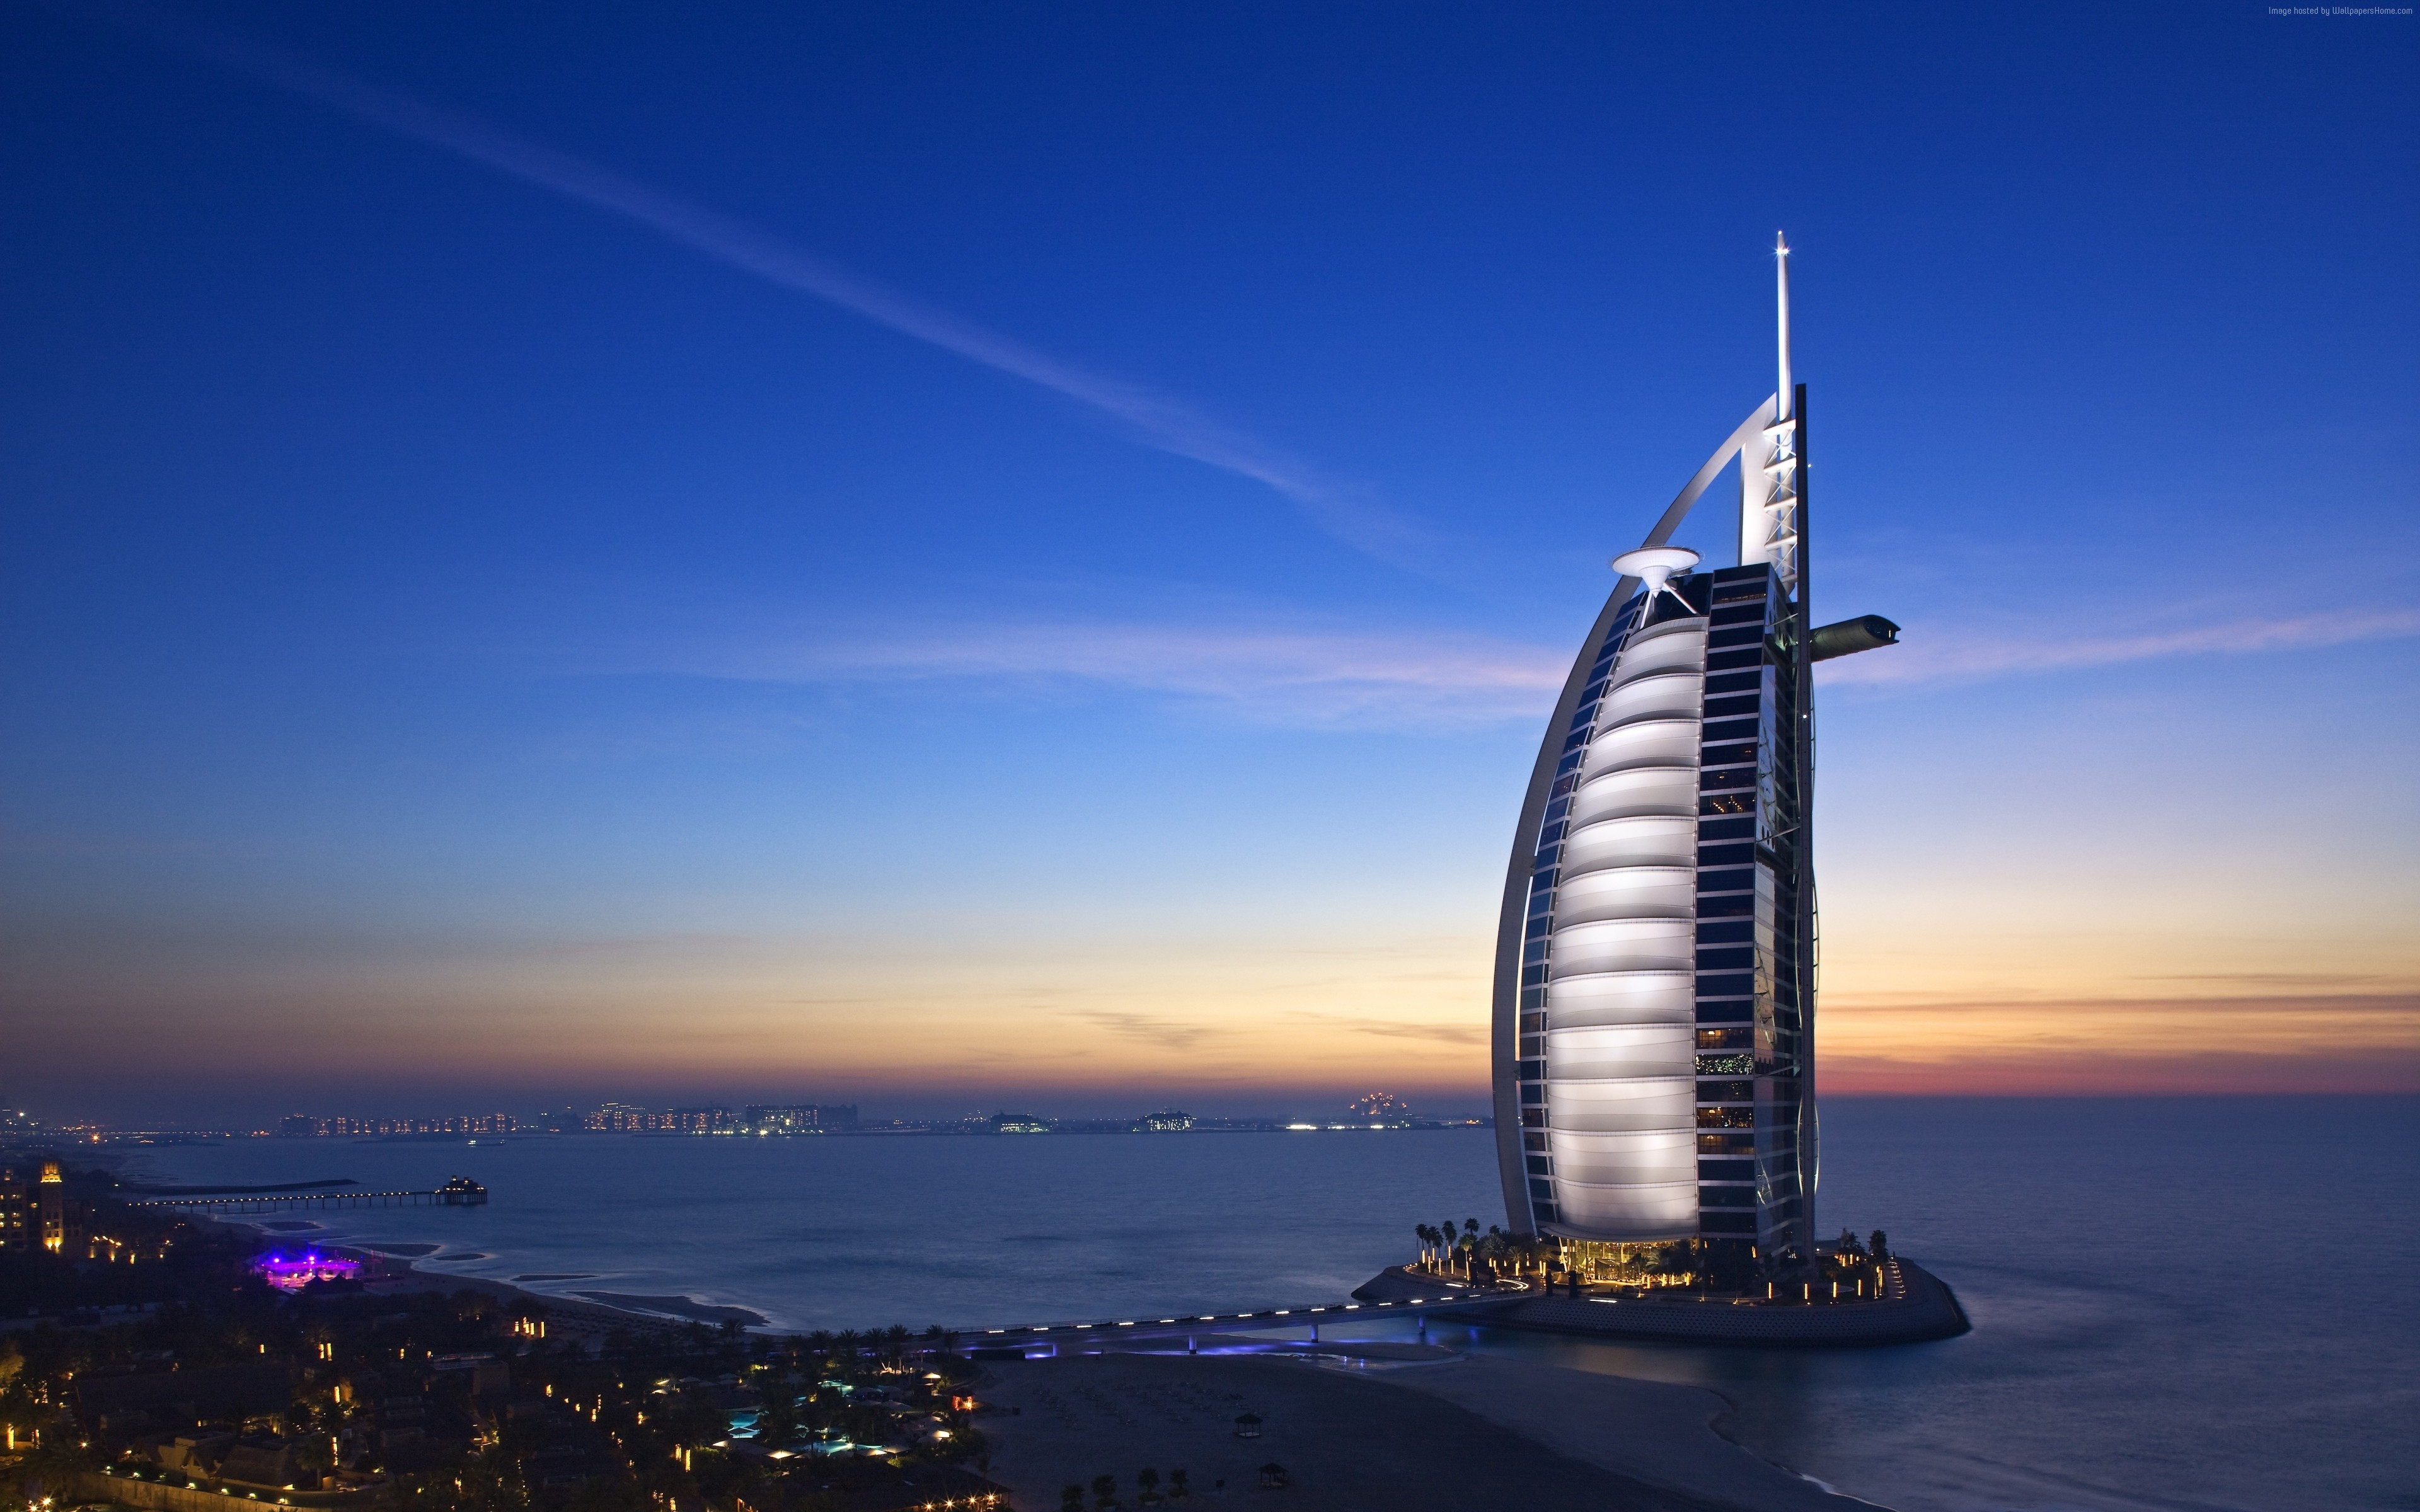 burj-al-arab-hotel-3840×2400-dubai-uae-travel-booking-pool-378